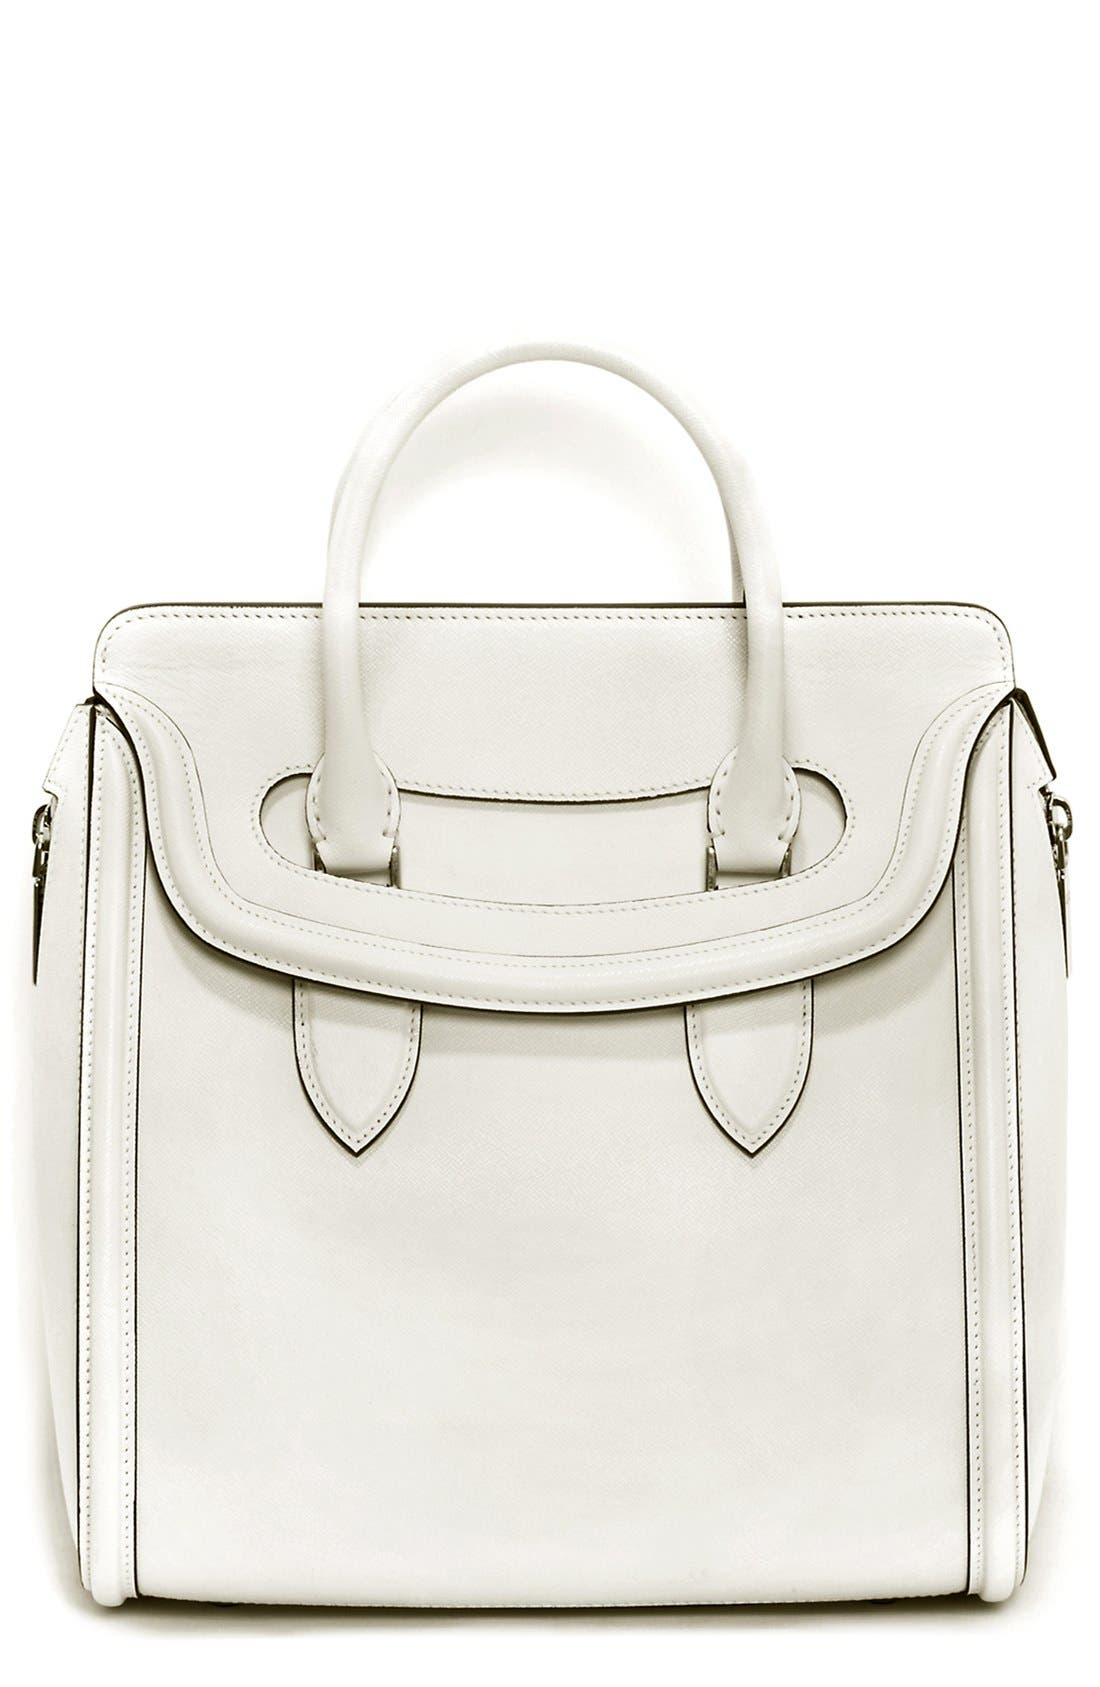 Main Image - Alexander McQueen 'Medium Heroine' Calfskin Leather Satchel